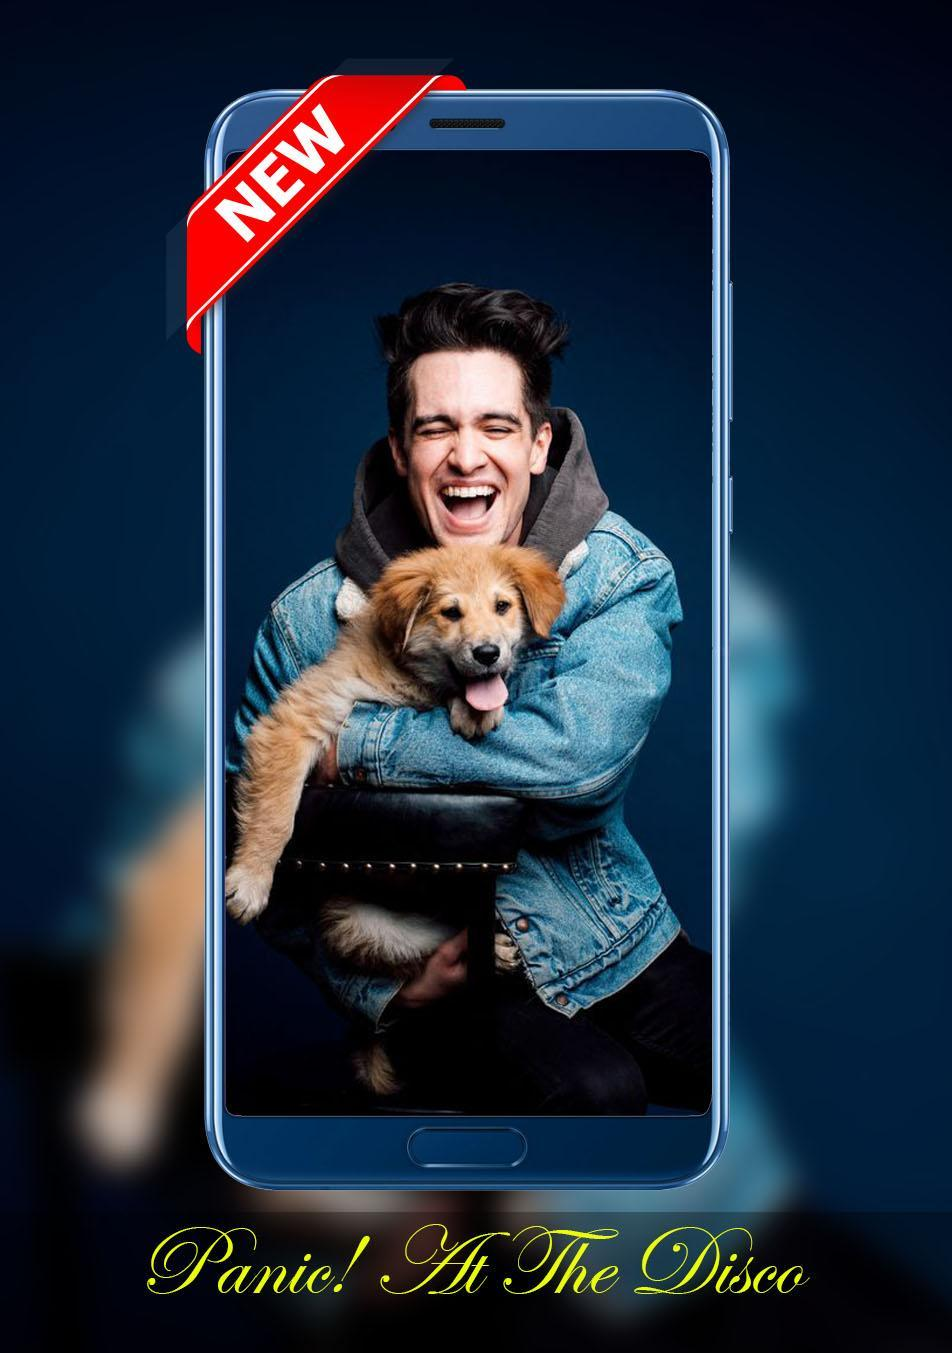 Panic At The Disco Wallpaper Hd For Android Apk Download